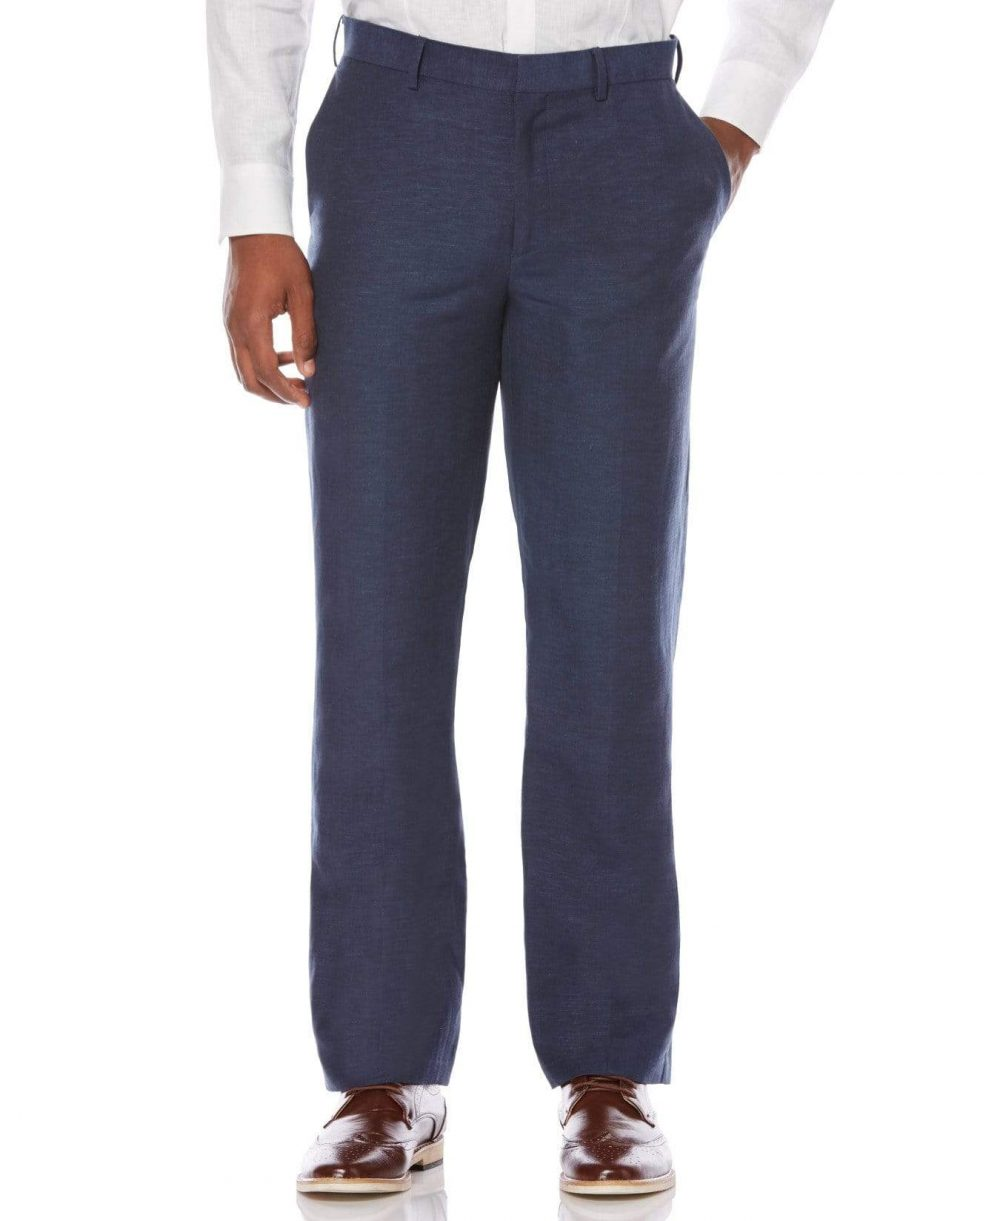 Cubavera Men's Big & Tall Linen-Blend Flat Front Pants (Dress Blues) - Size 46